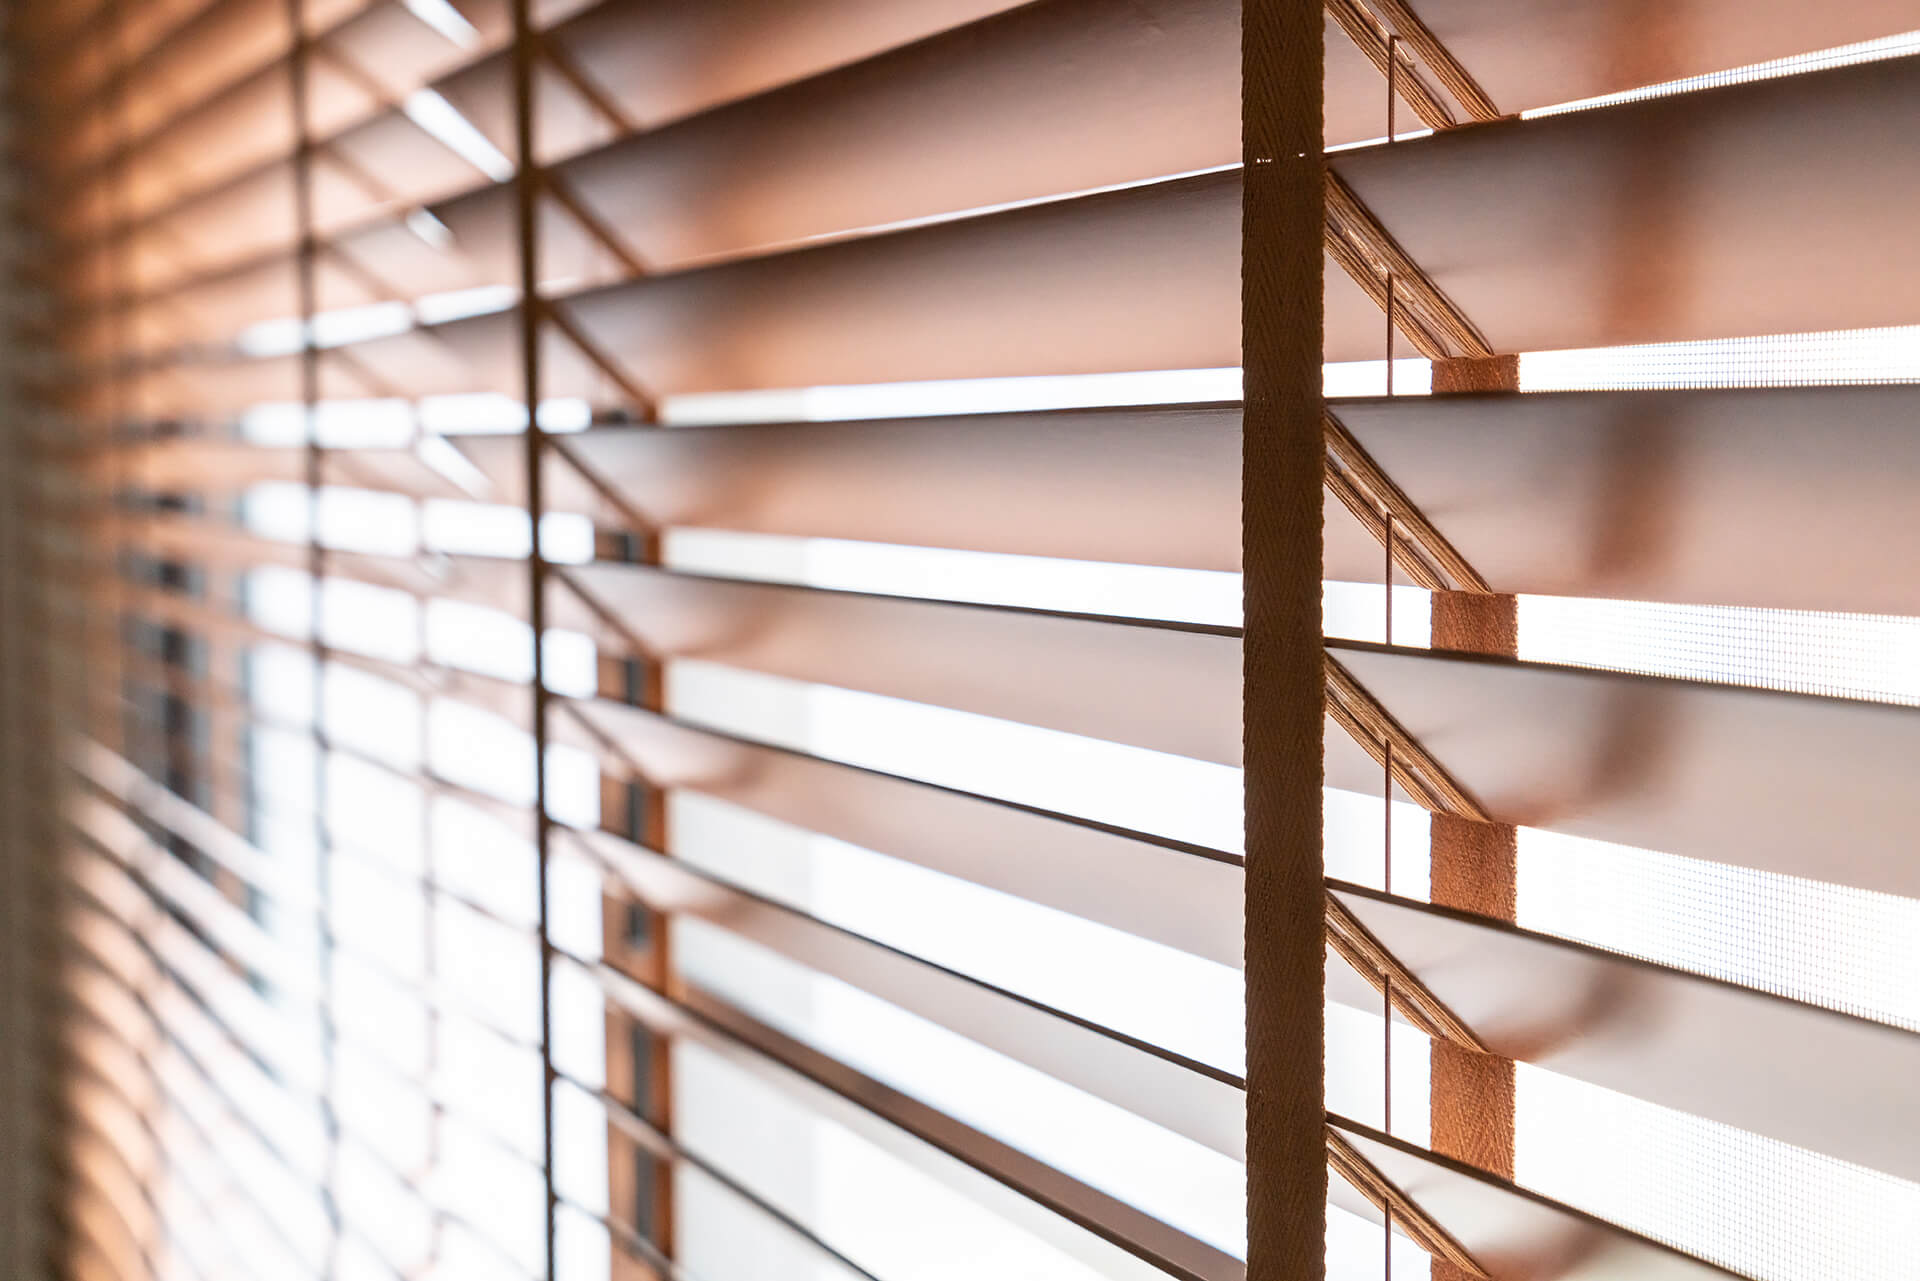 Dubai Blinds